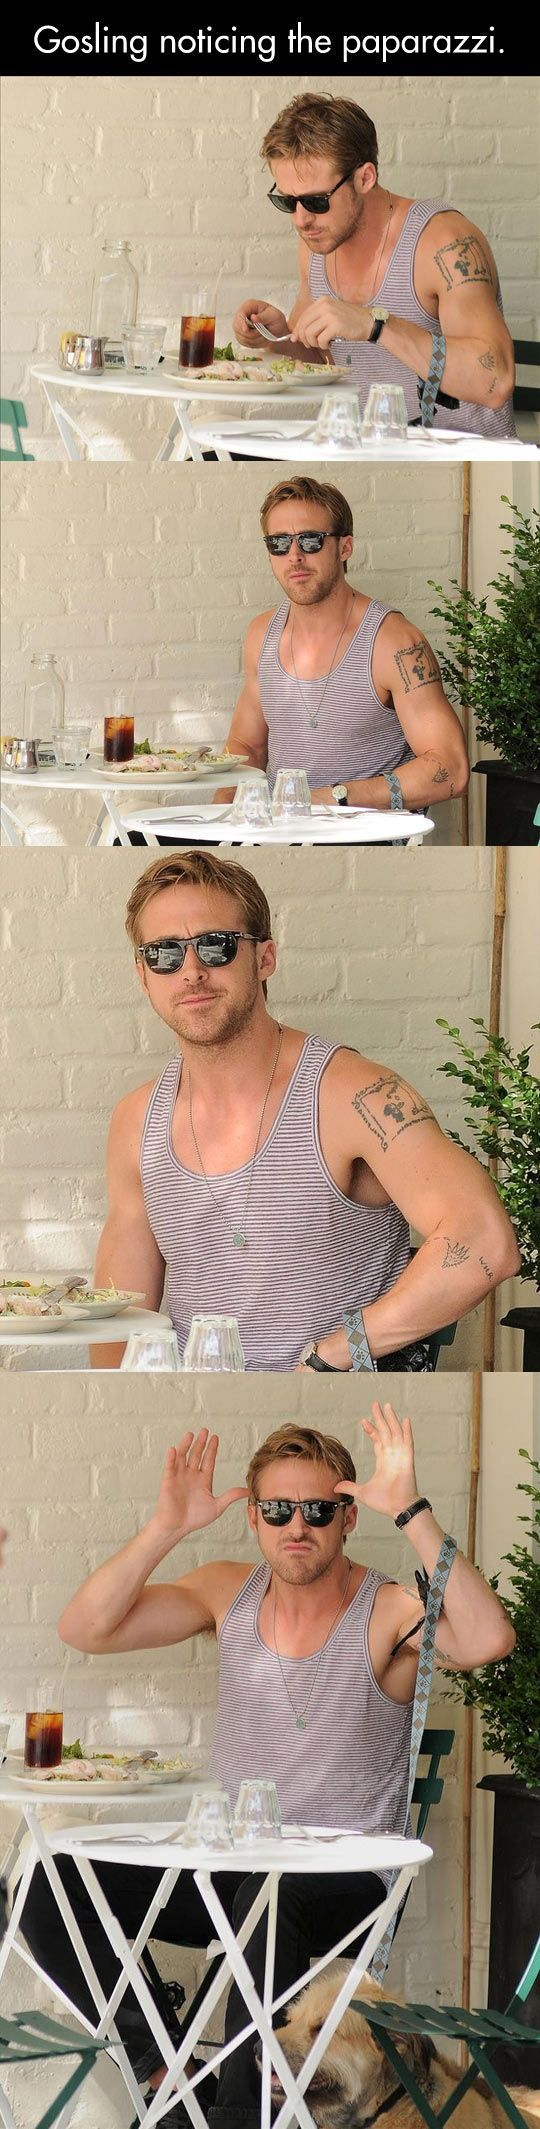 #RyanGosling: When noticing the #paparazzi.is Looking!! -  iwastesomuchtime.com